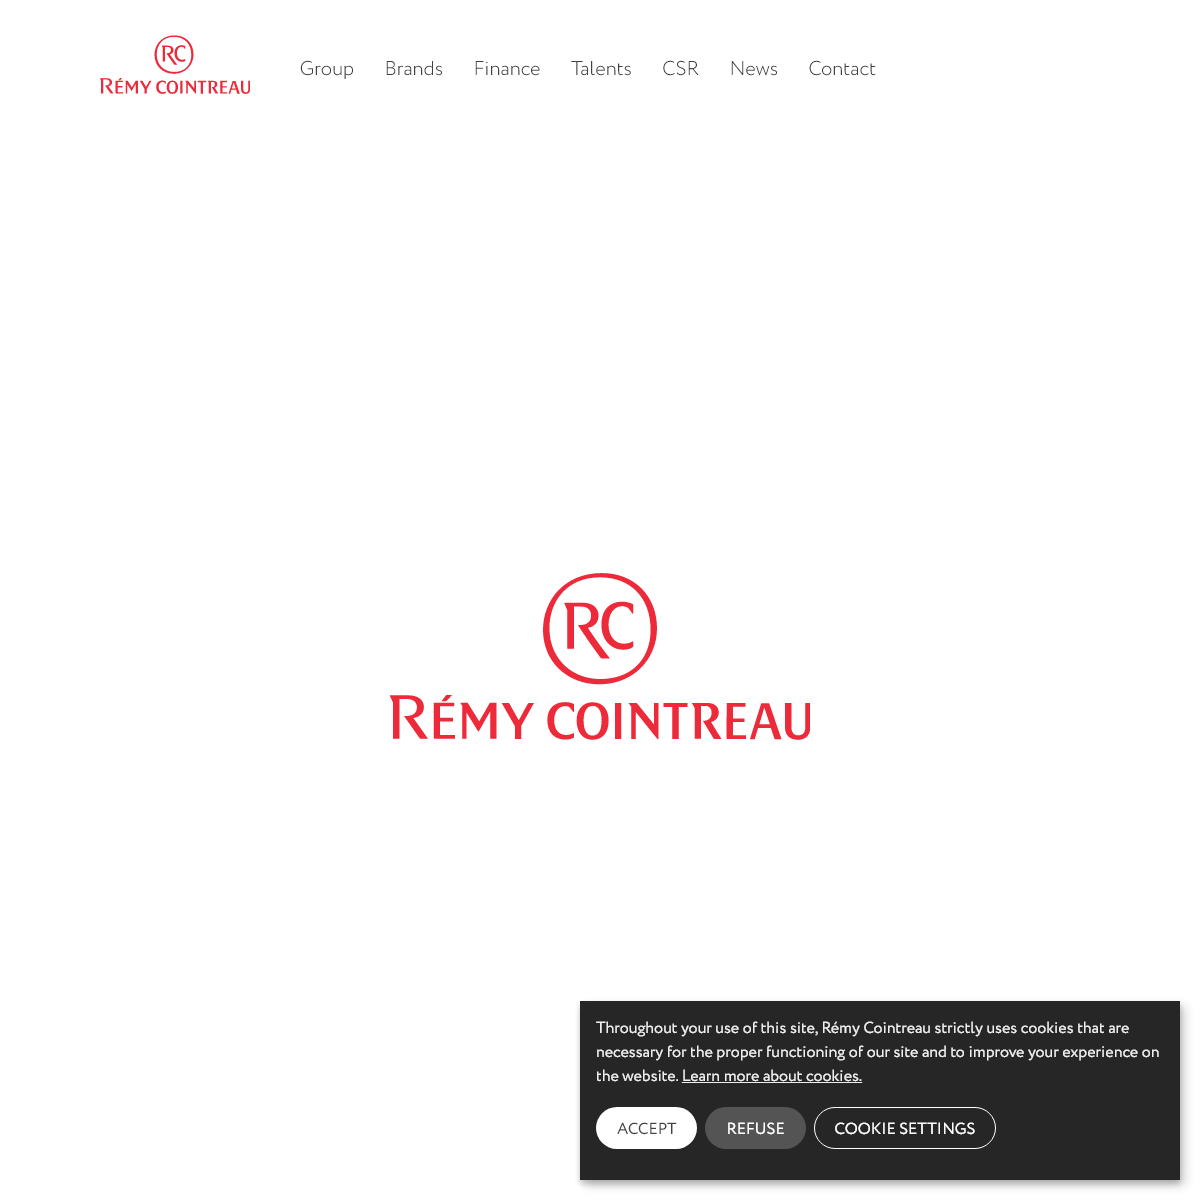 Rémy Cointreau – Rémy Cointreau is a French spirits group. Its main business is the production of cognacs, liqueurs and cham